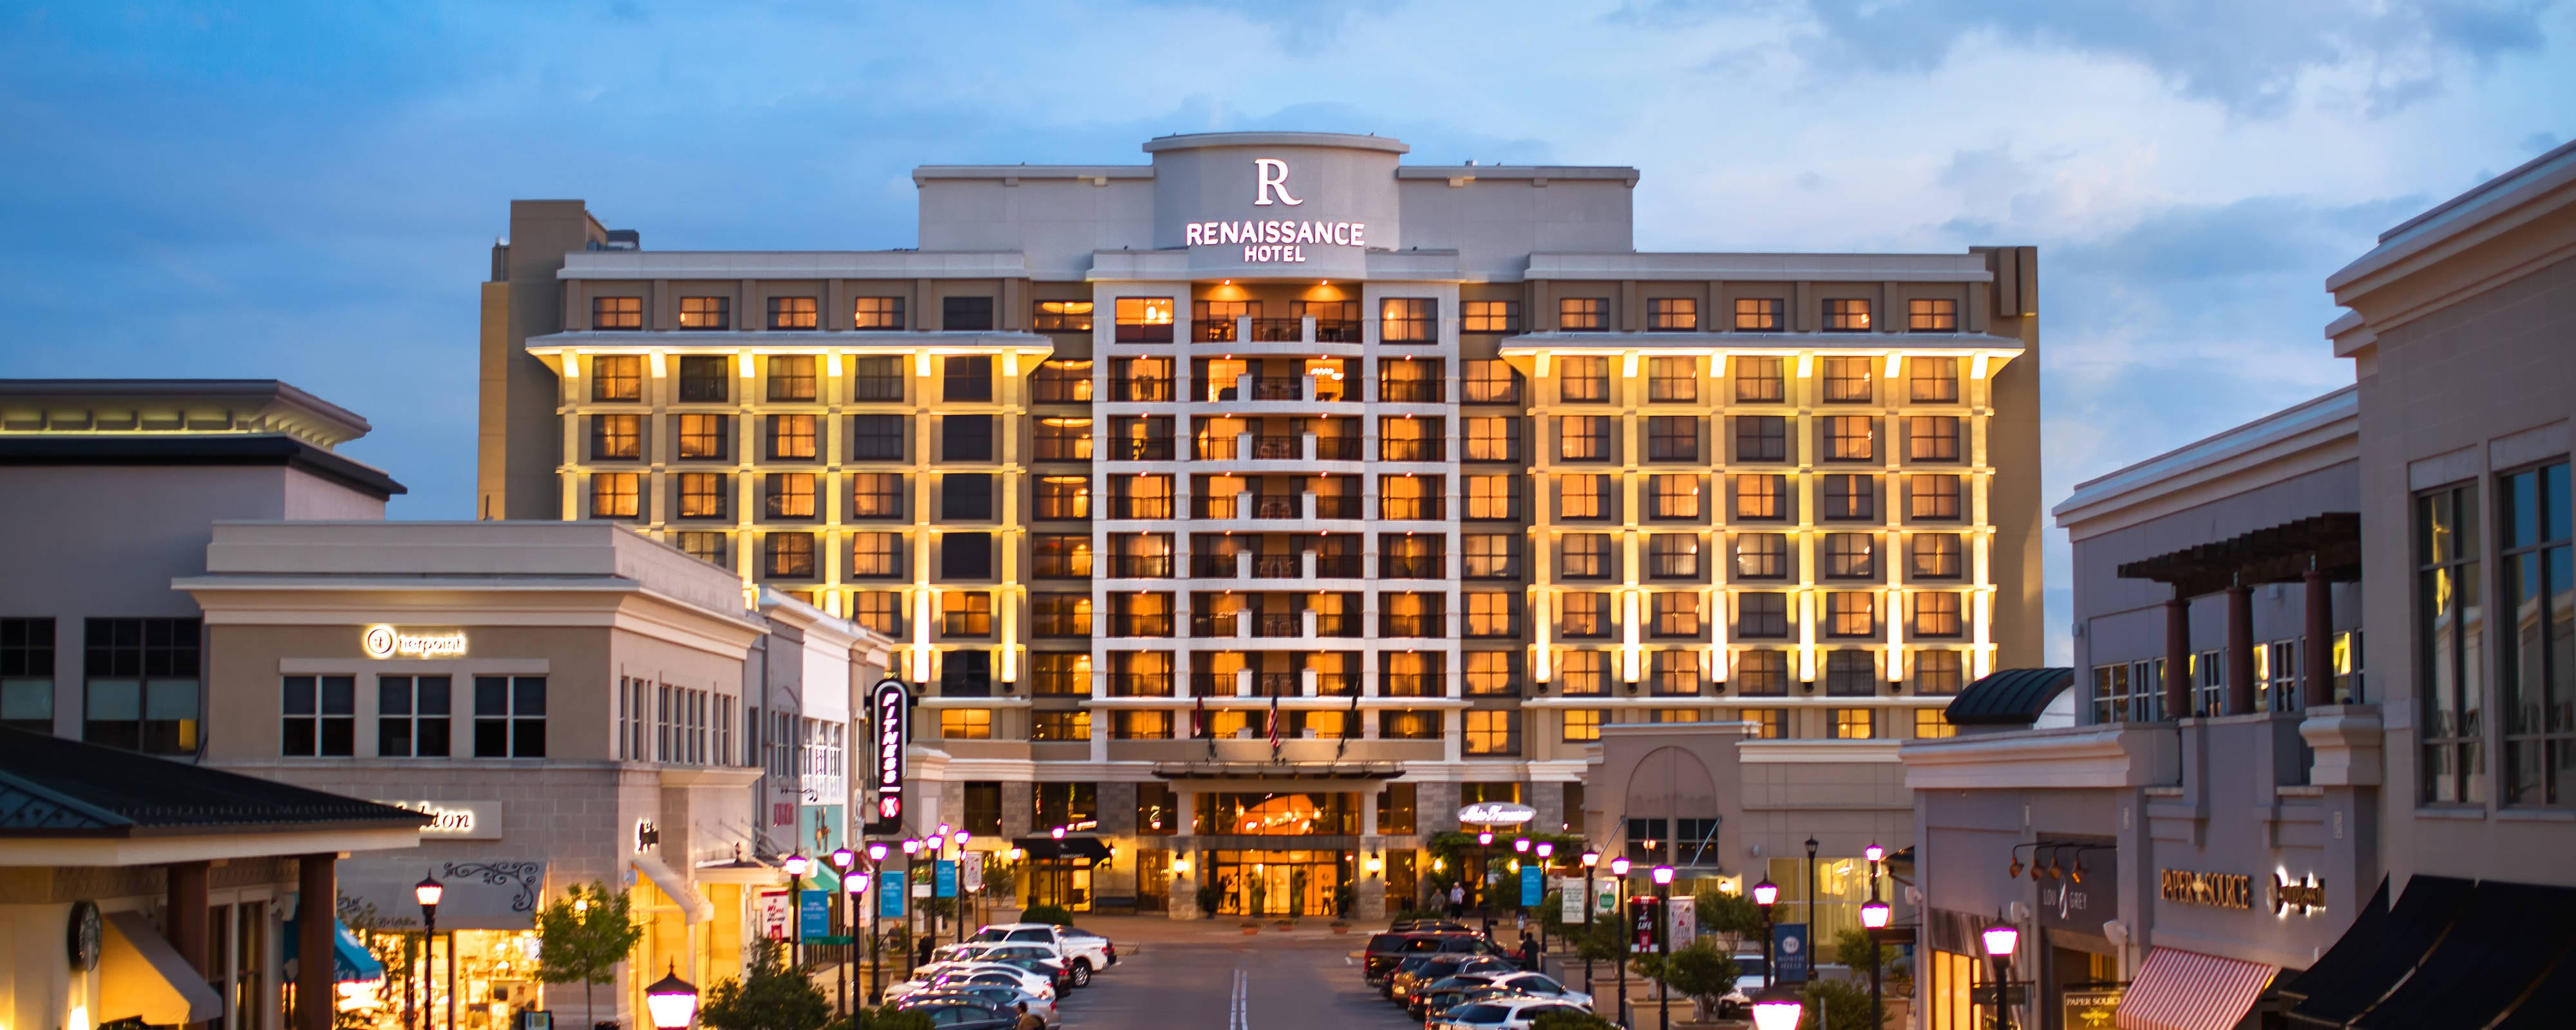 Save money with these Renaissance Las Vegas Hotel promo codes and discount room offers. You'll find that the Renaissance hotel in Las Vegas is a welcome departure from the traditional atmosphere of other hotels in Vegas.